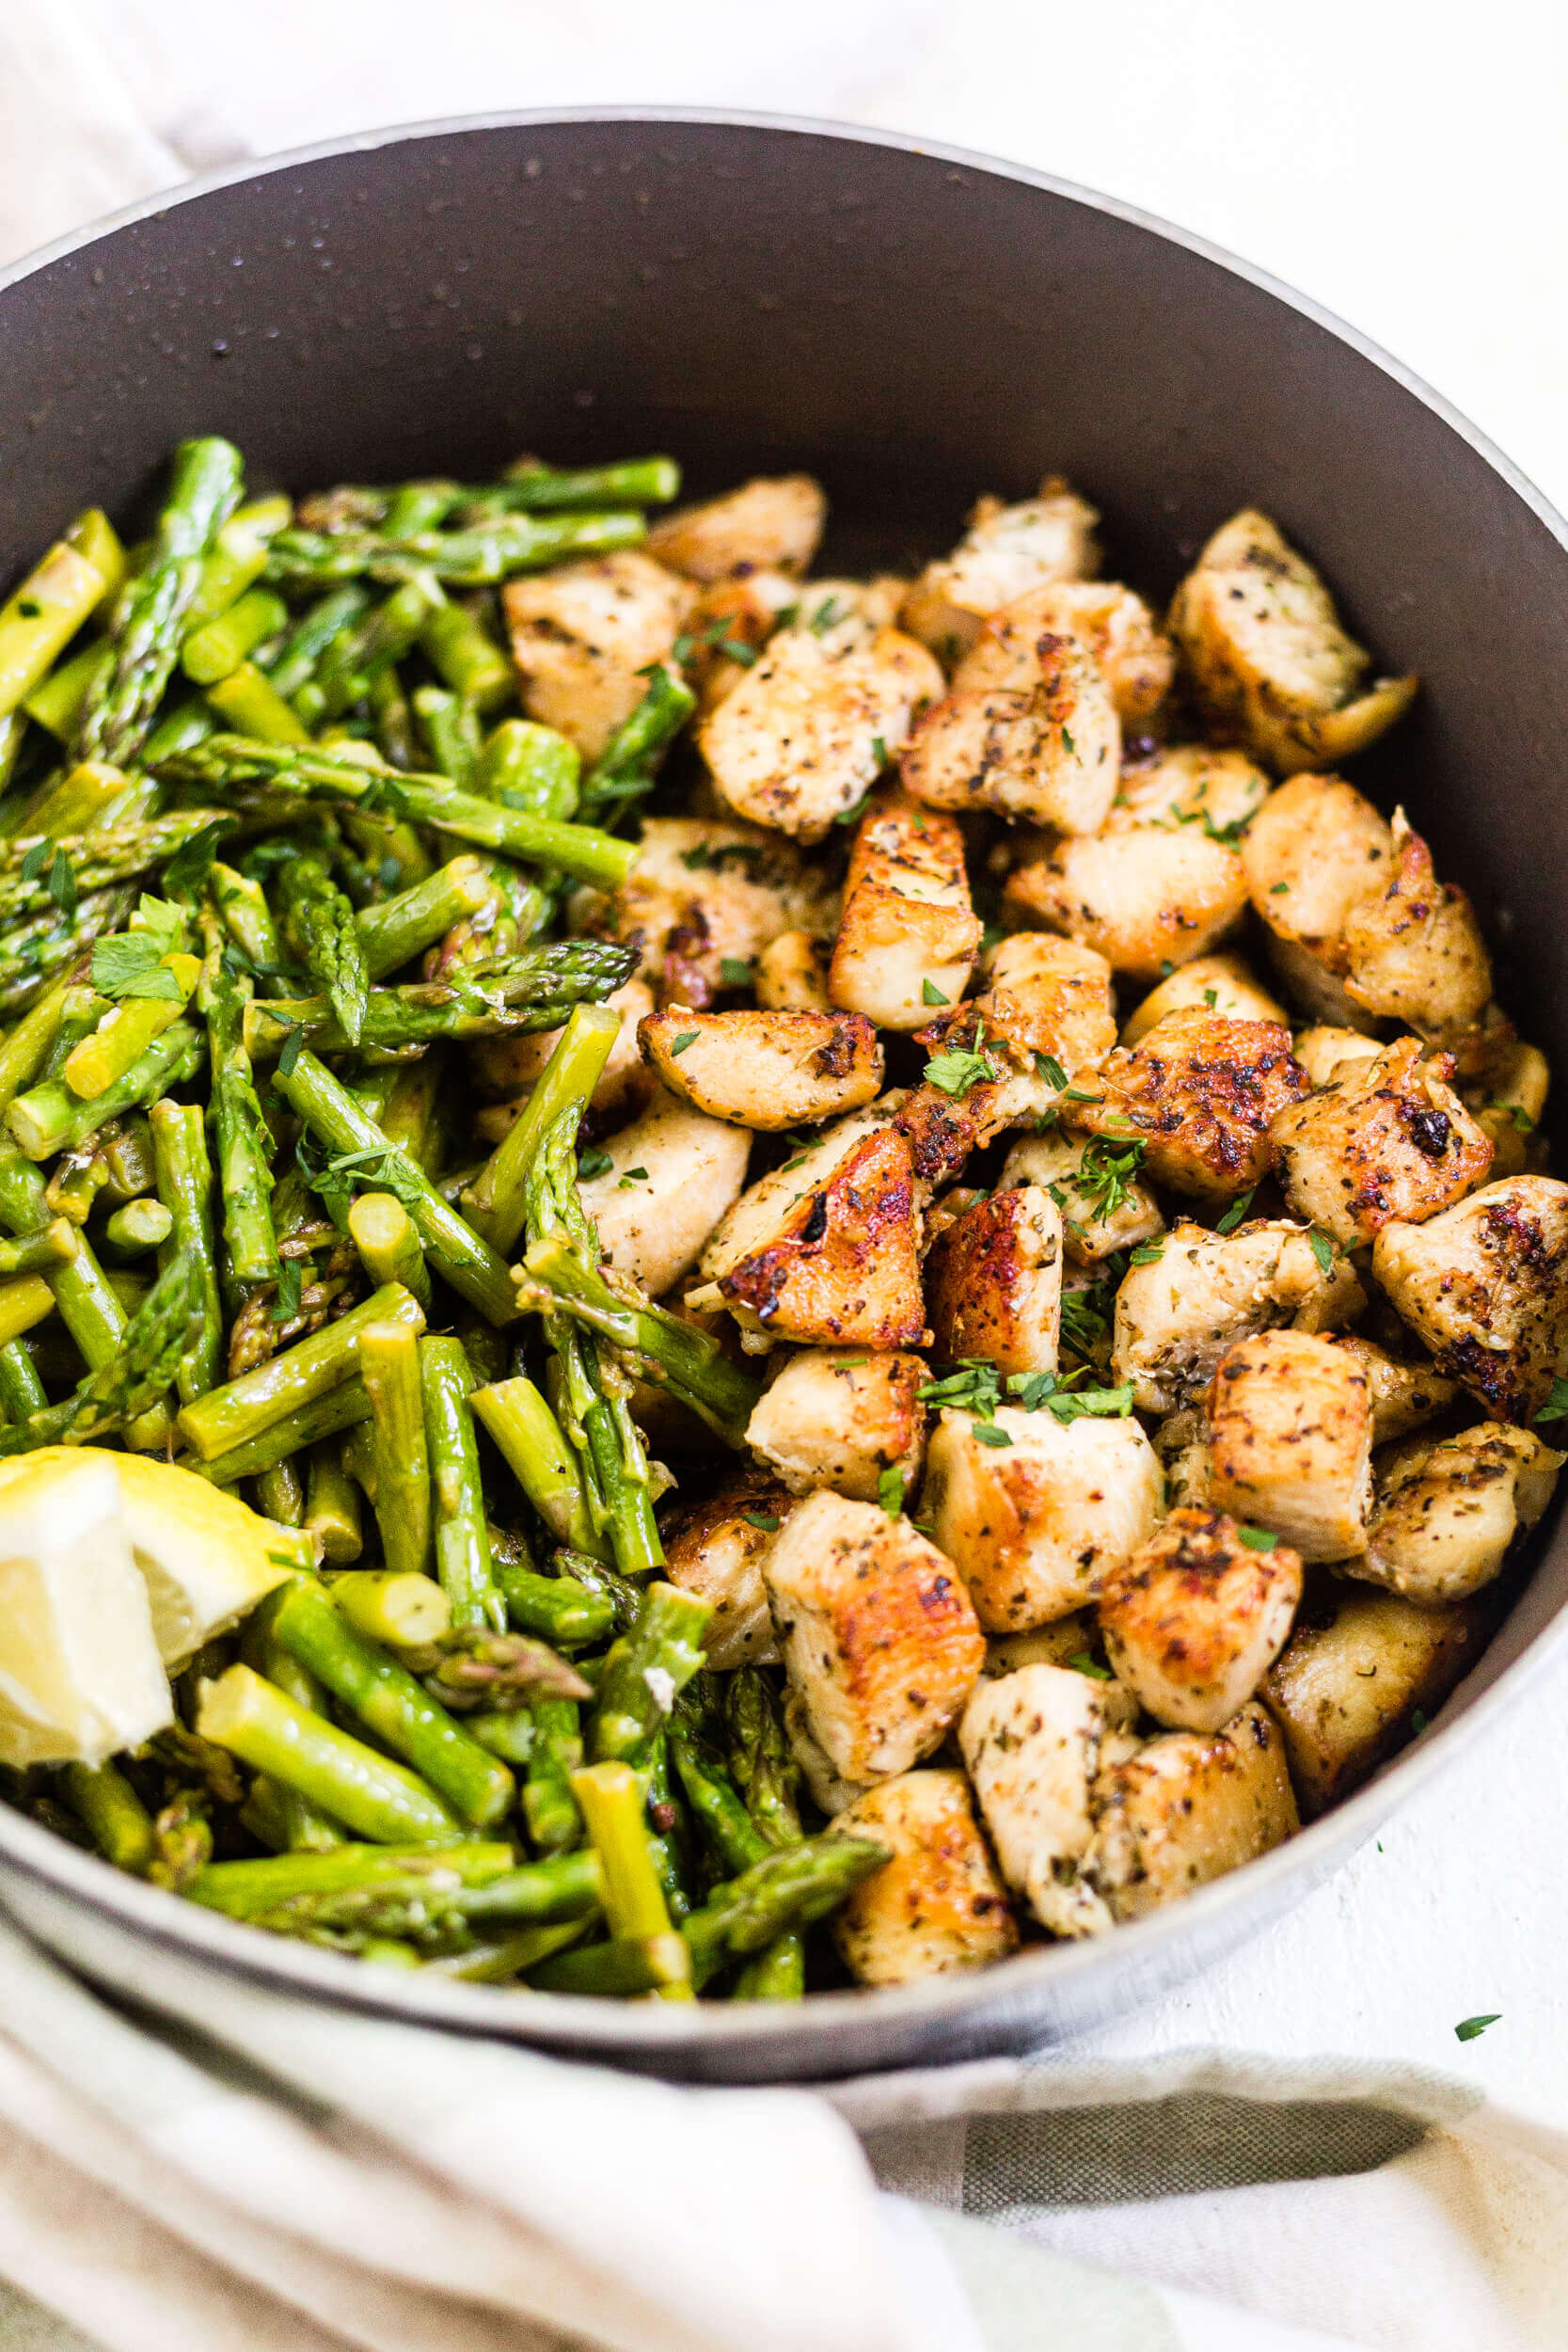 crispy chicken bites in a pan with asparagus